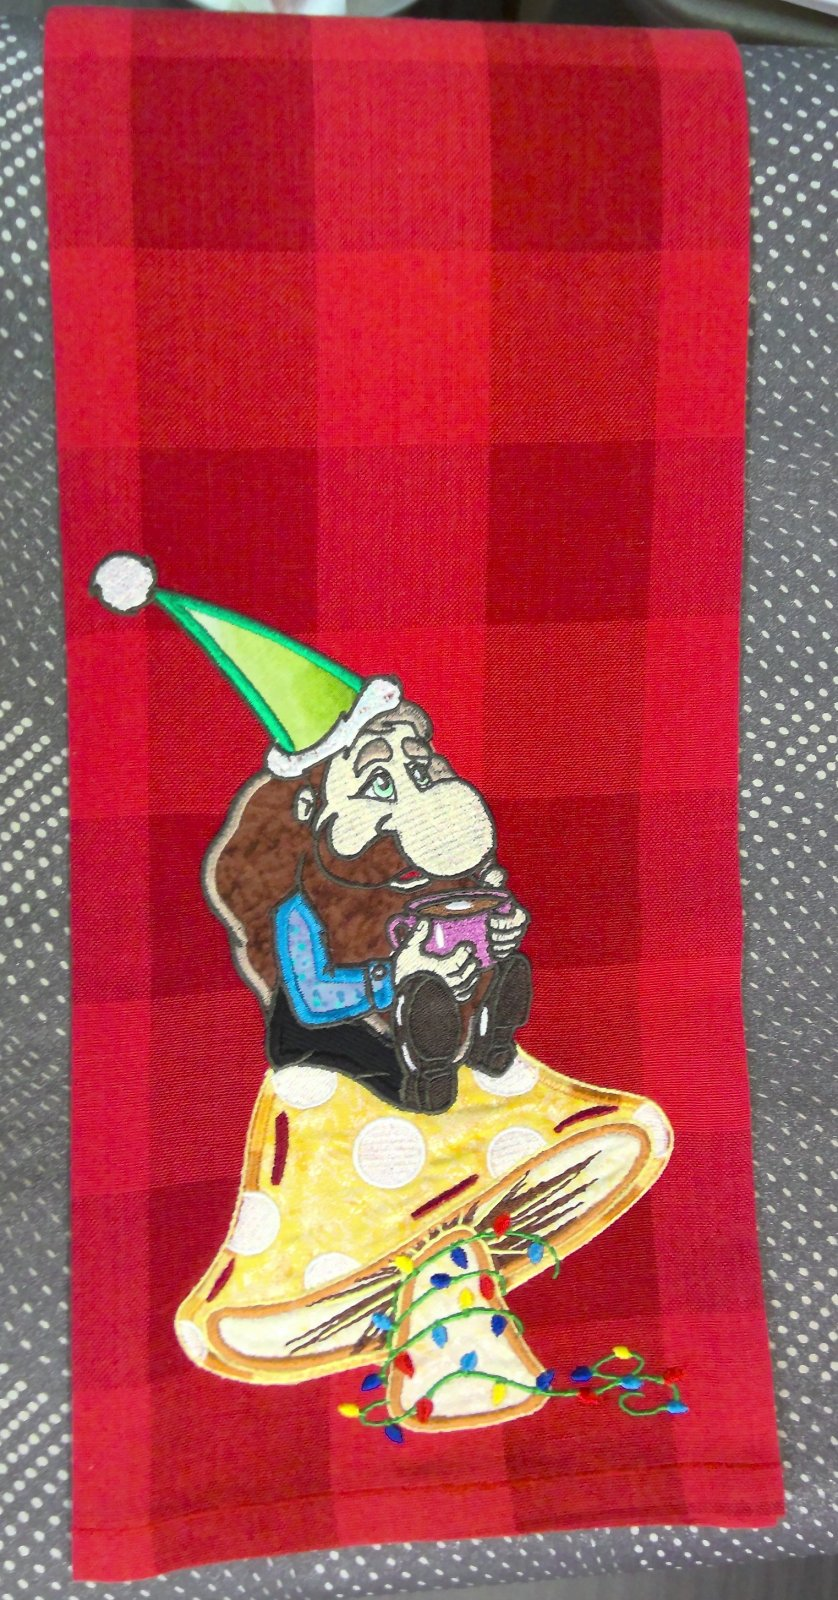 Red Buffalo Check Towel with an embroidered Elf on a Mushroom